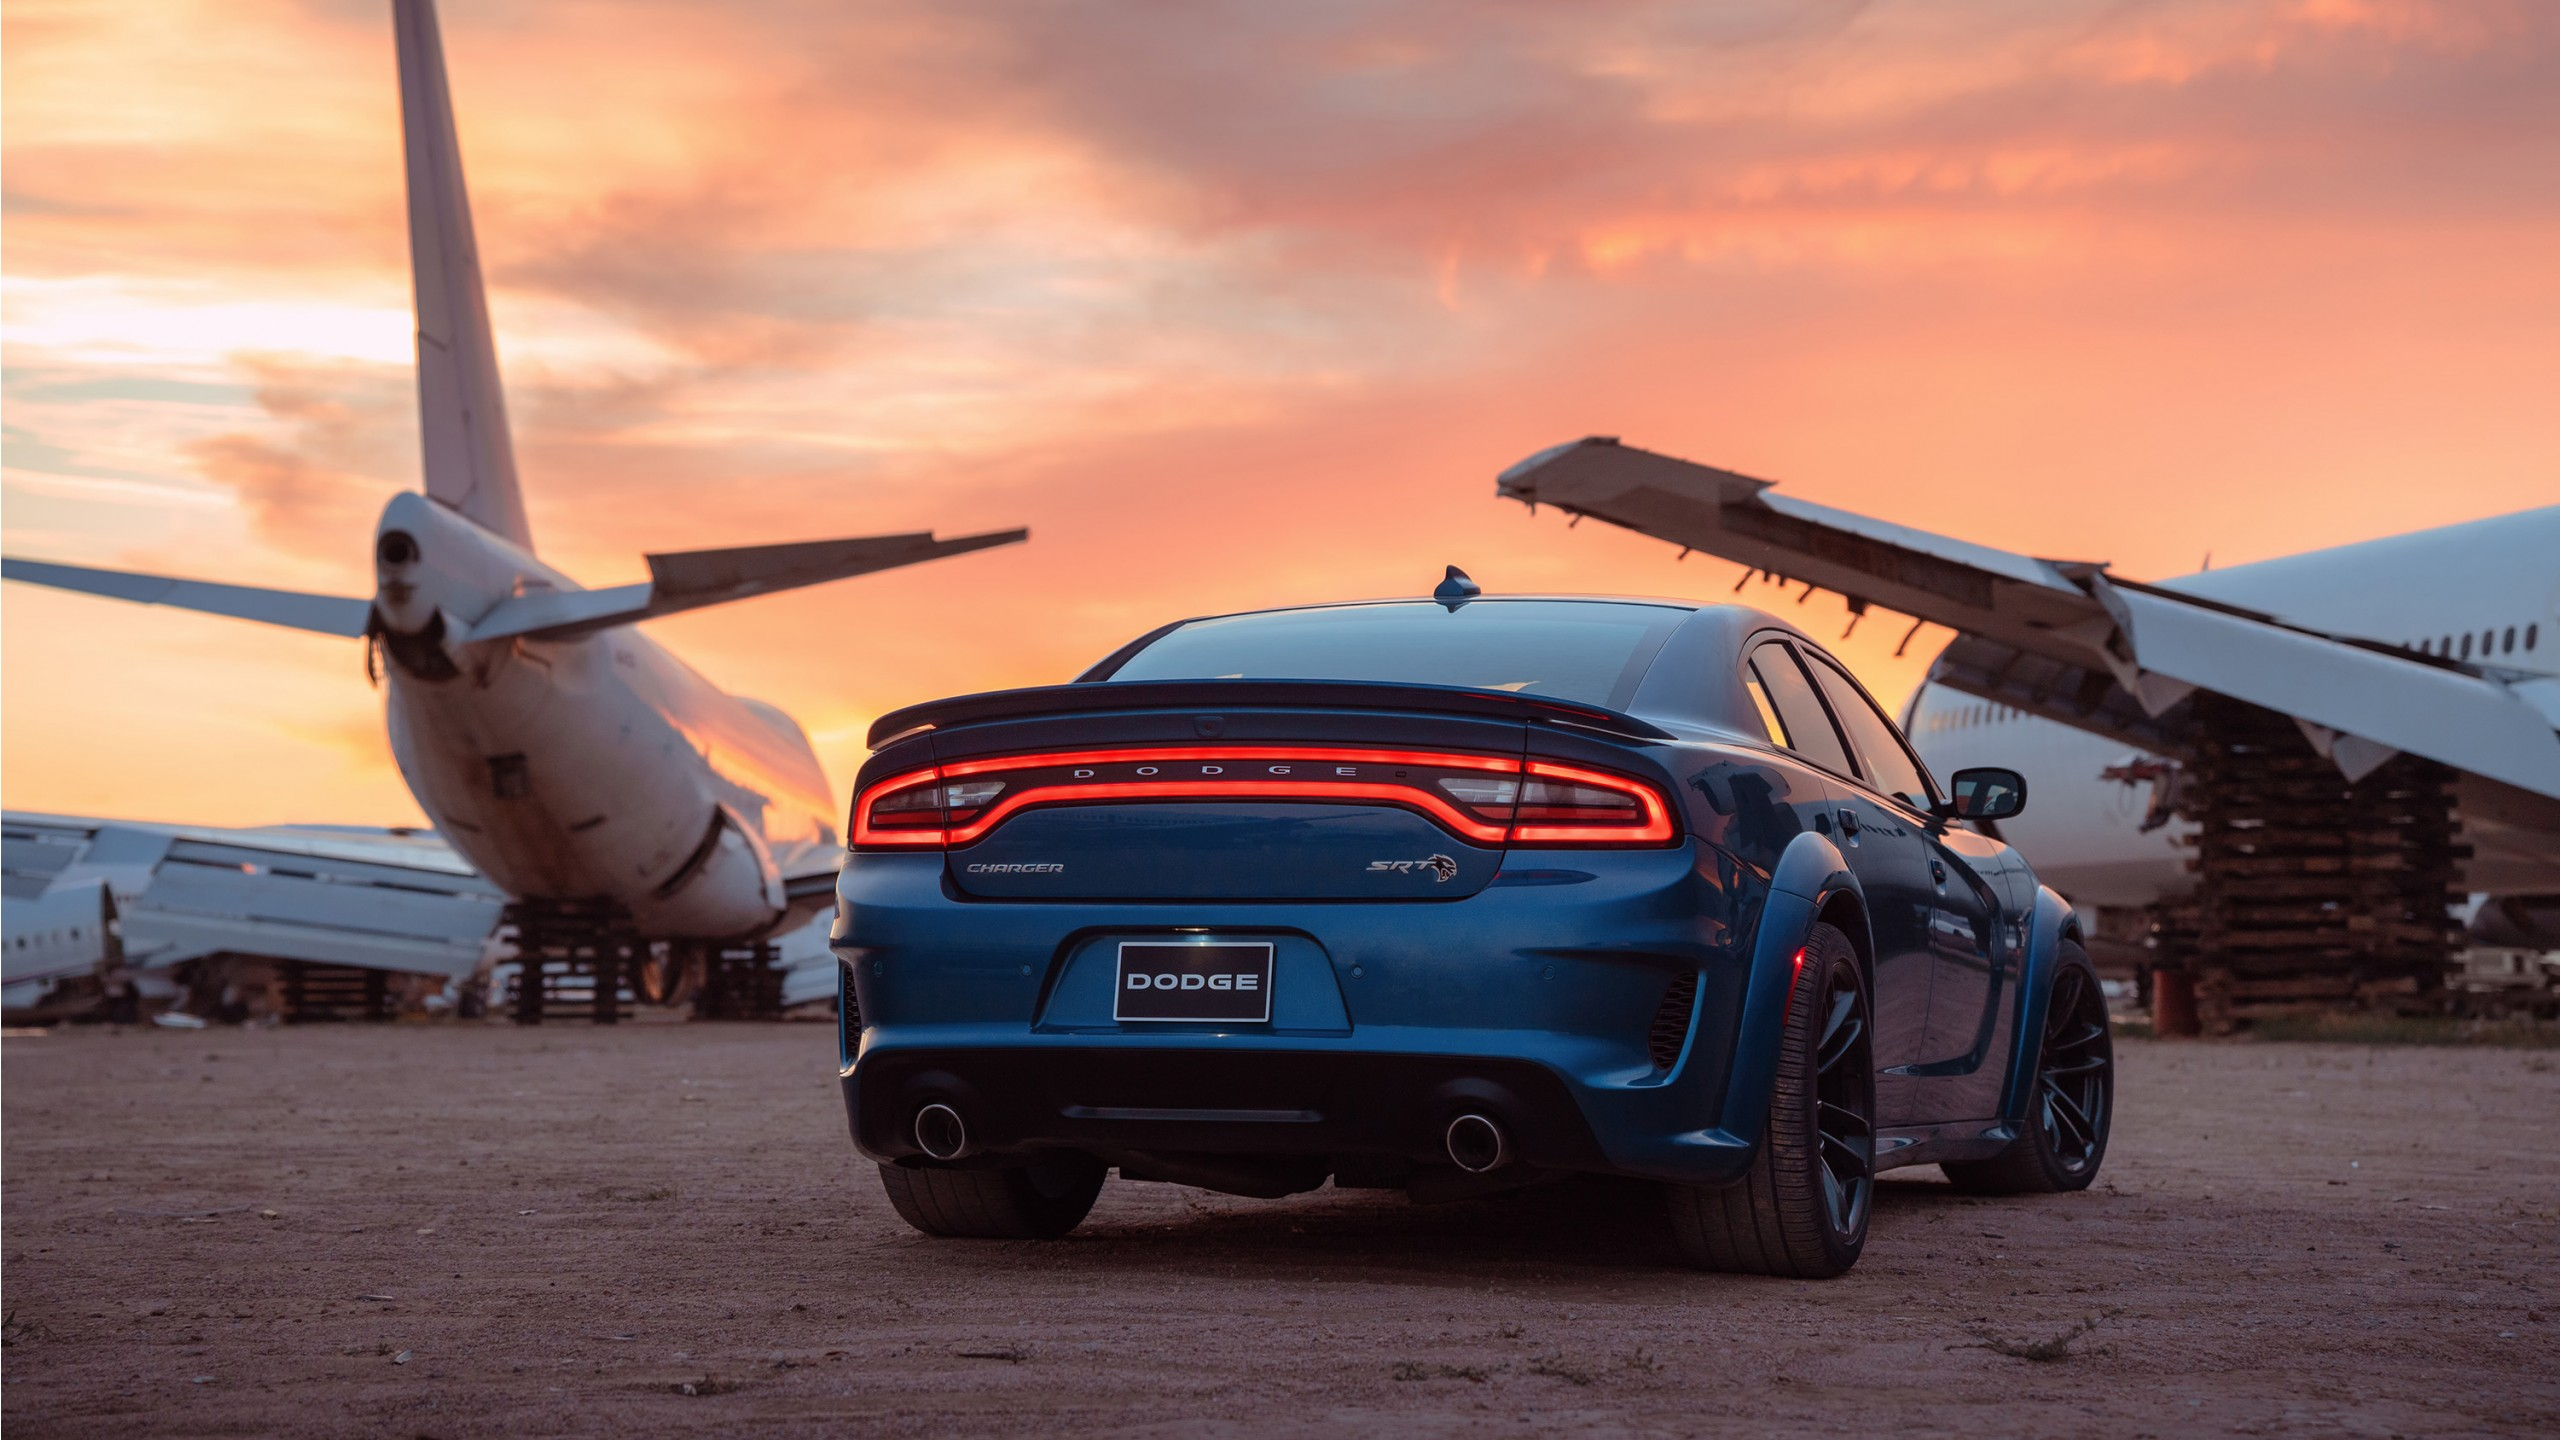 2020 Dodge Charger Srt Hellcat Widebody 2 Wallpaper Hd